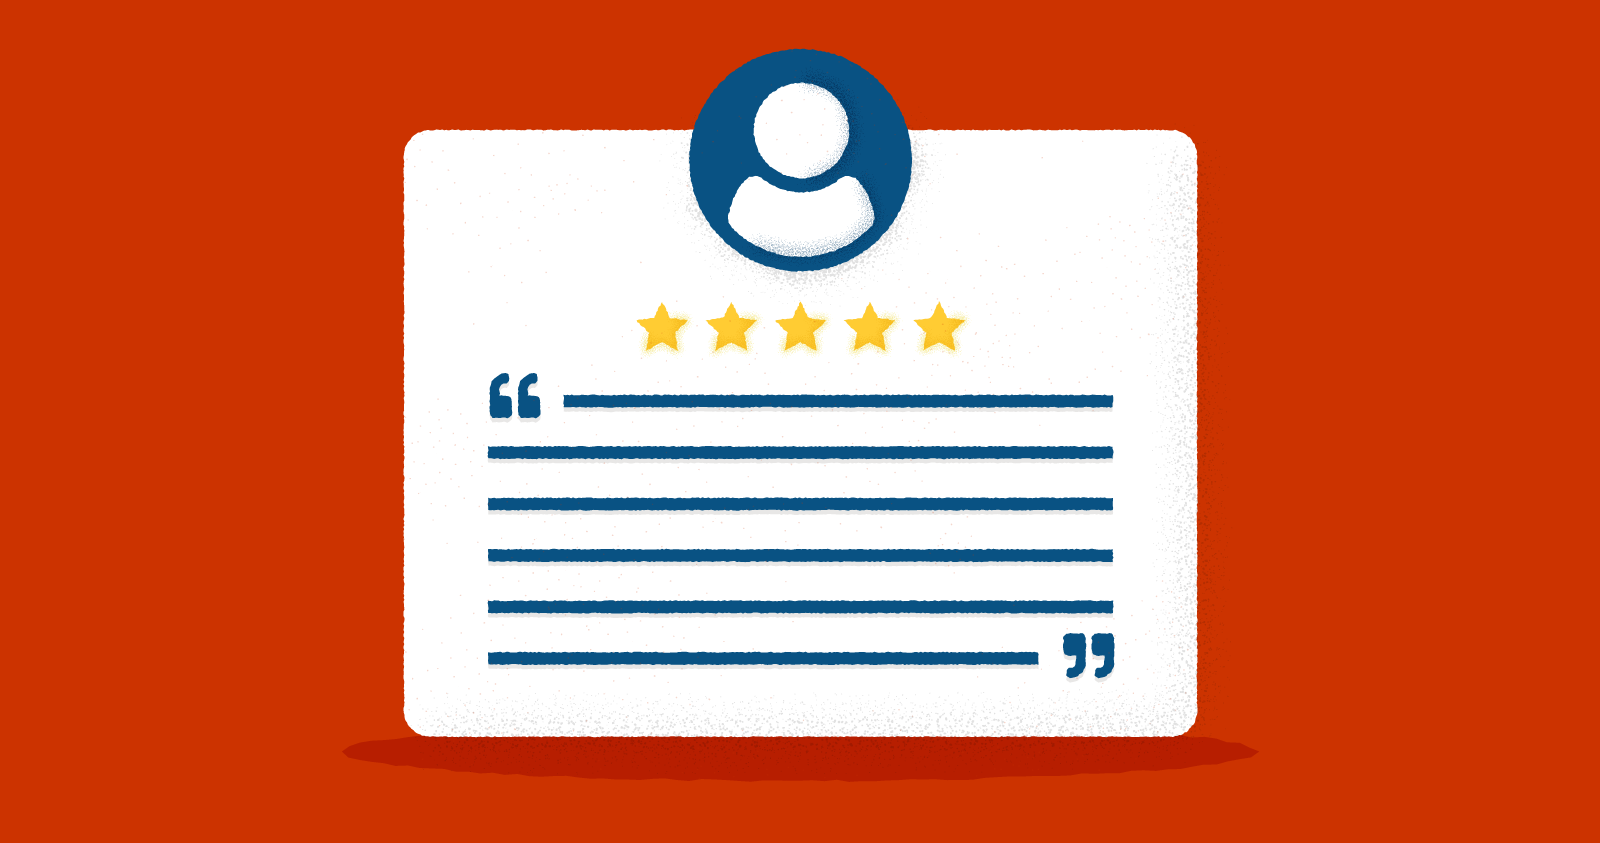 Exactly how online reviews impact your insurance agency (and how to get more of them)